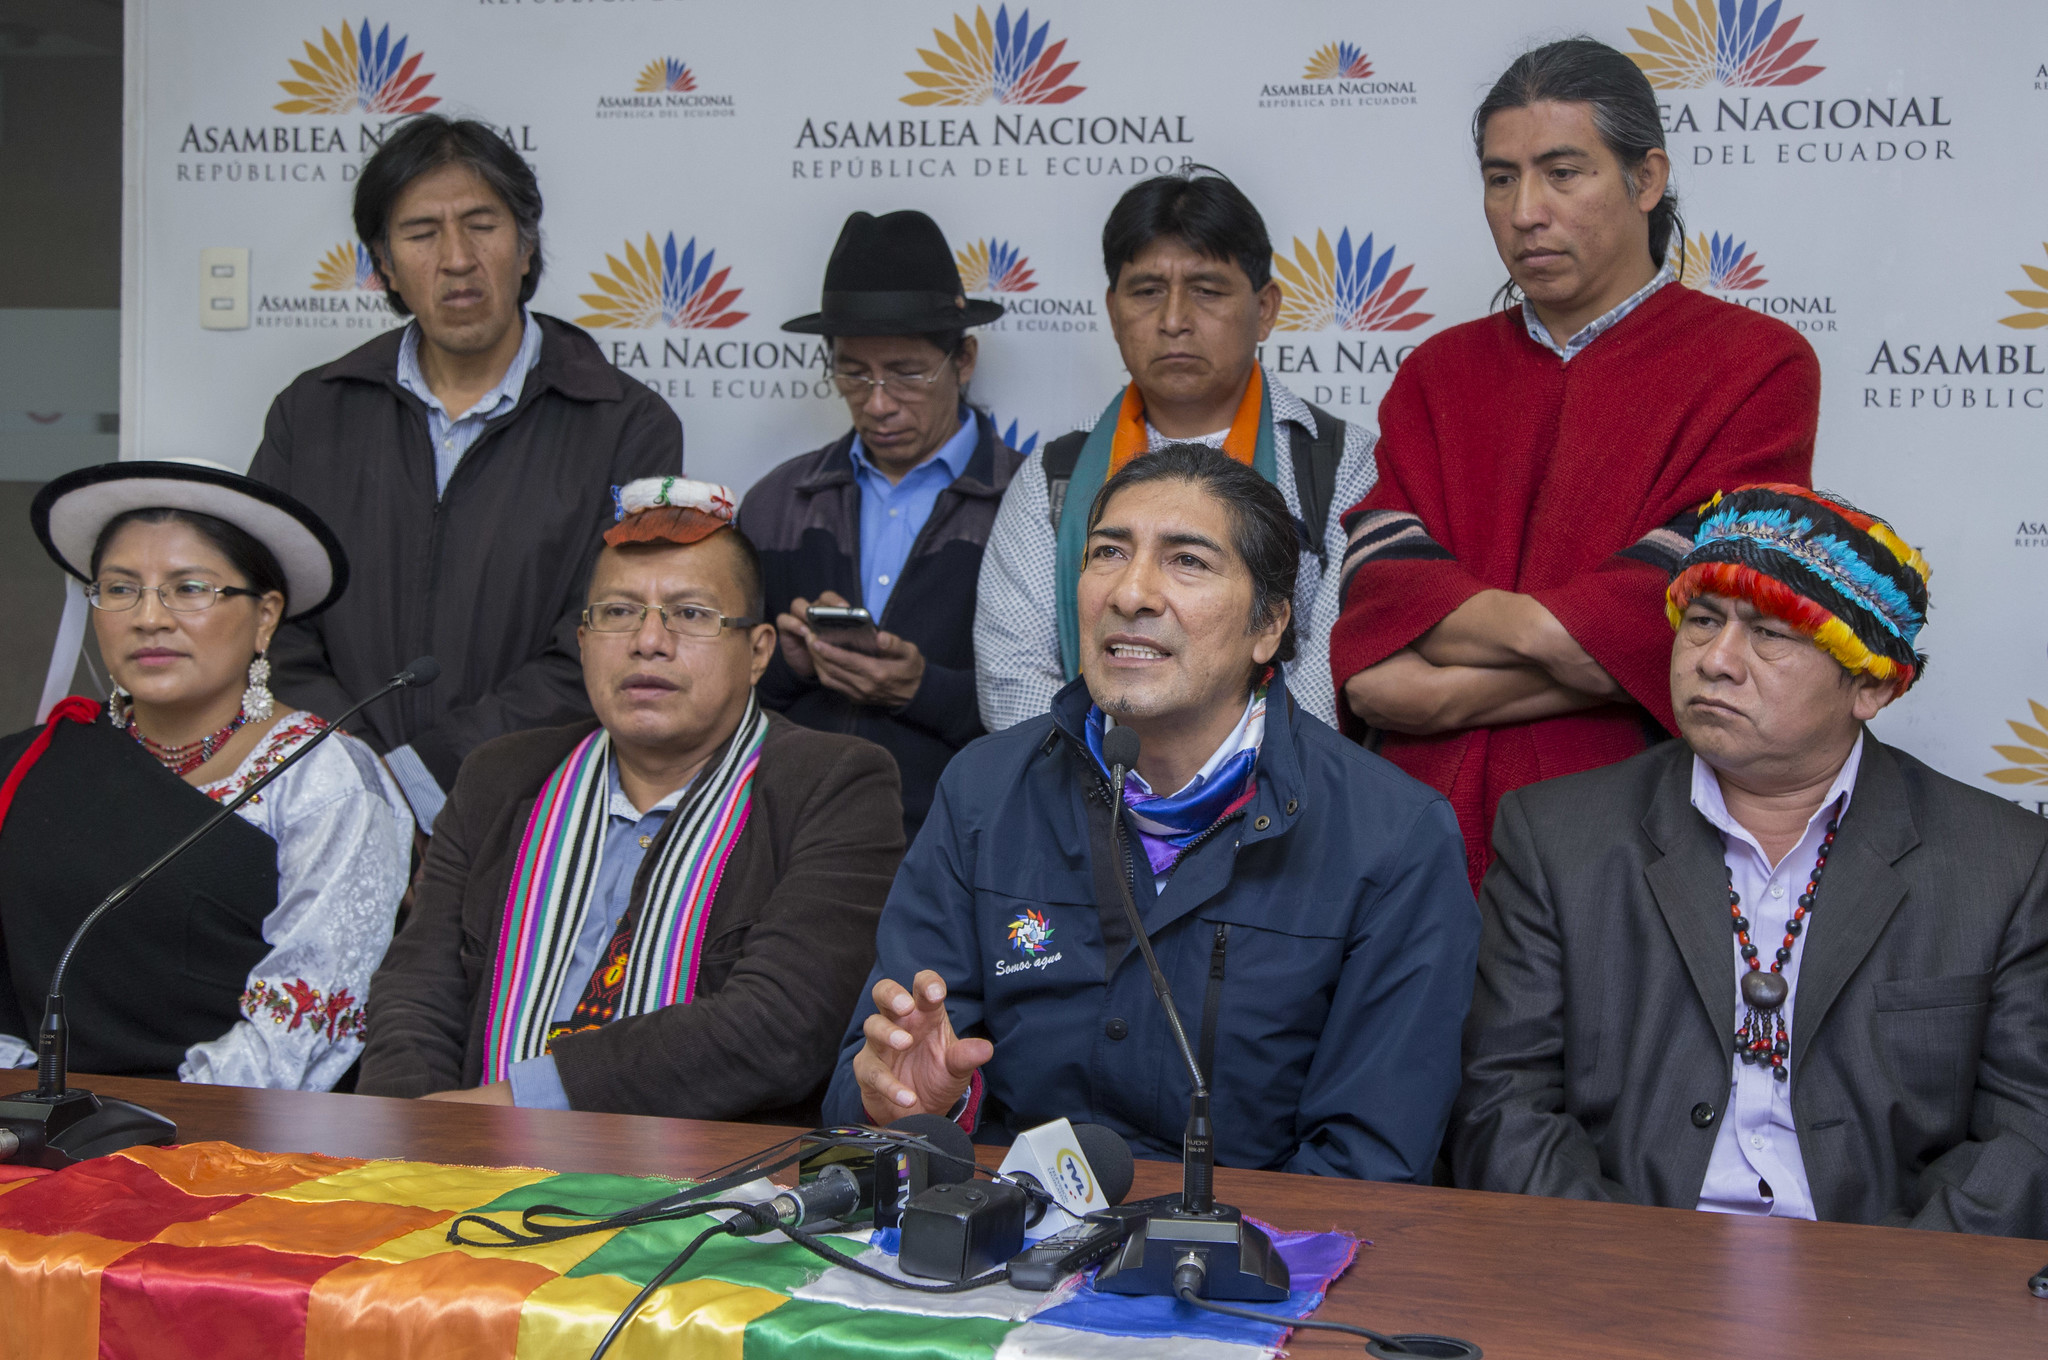 Yaku Image Ecuadorian National Assembly